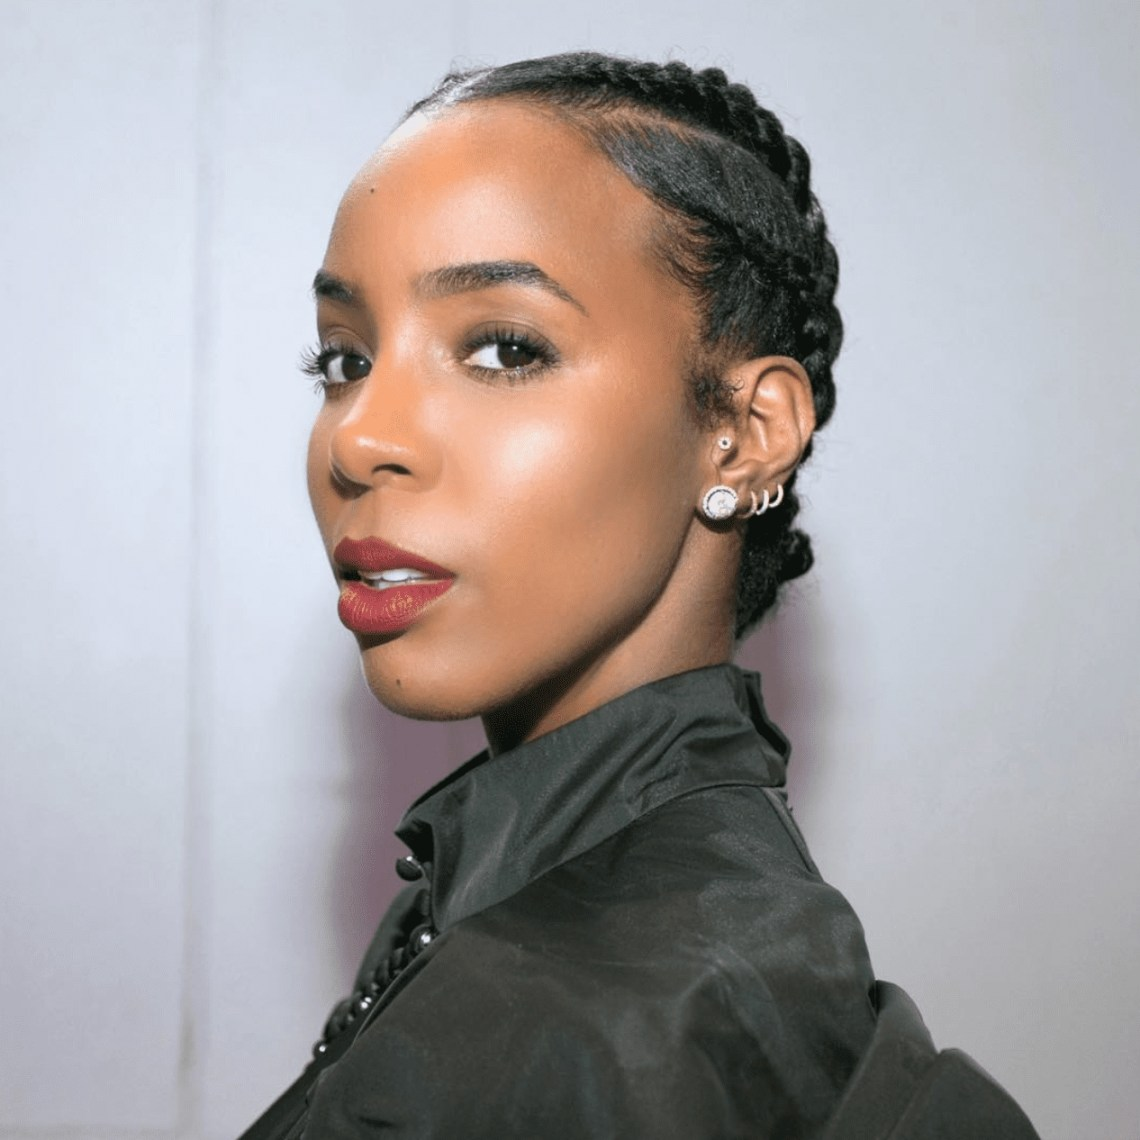 15 Stunning Medium Length Hairstyles For Natural Hair 4C Natural Hairstyles Medium Length